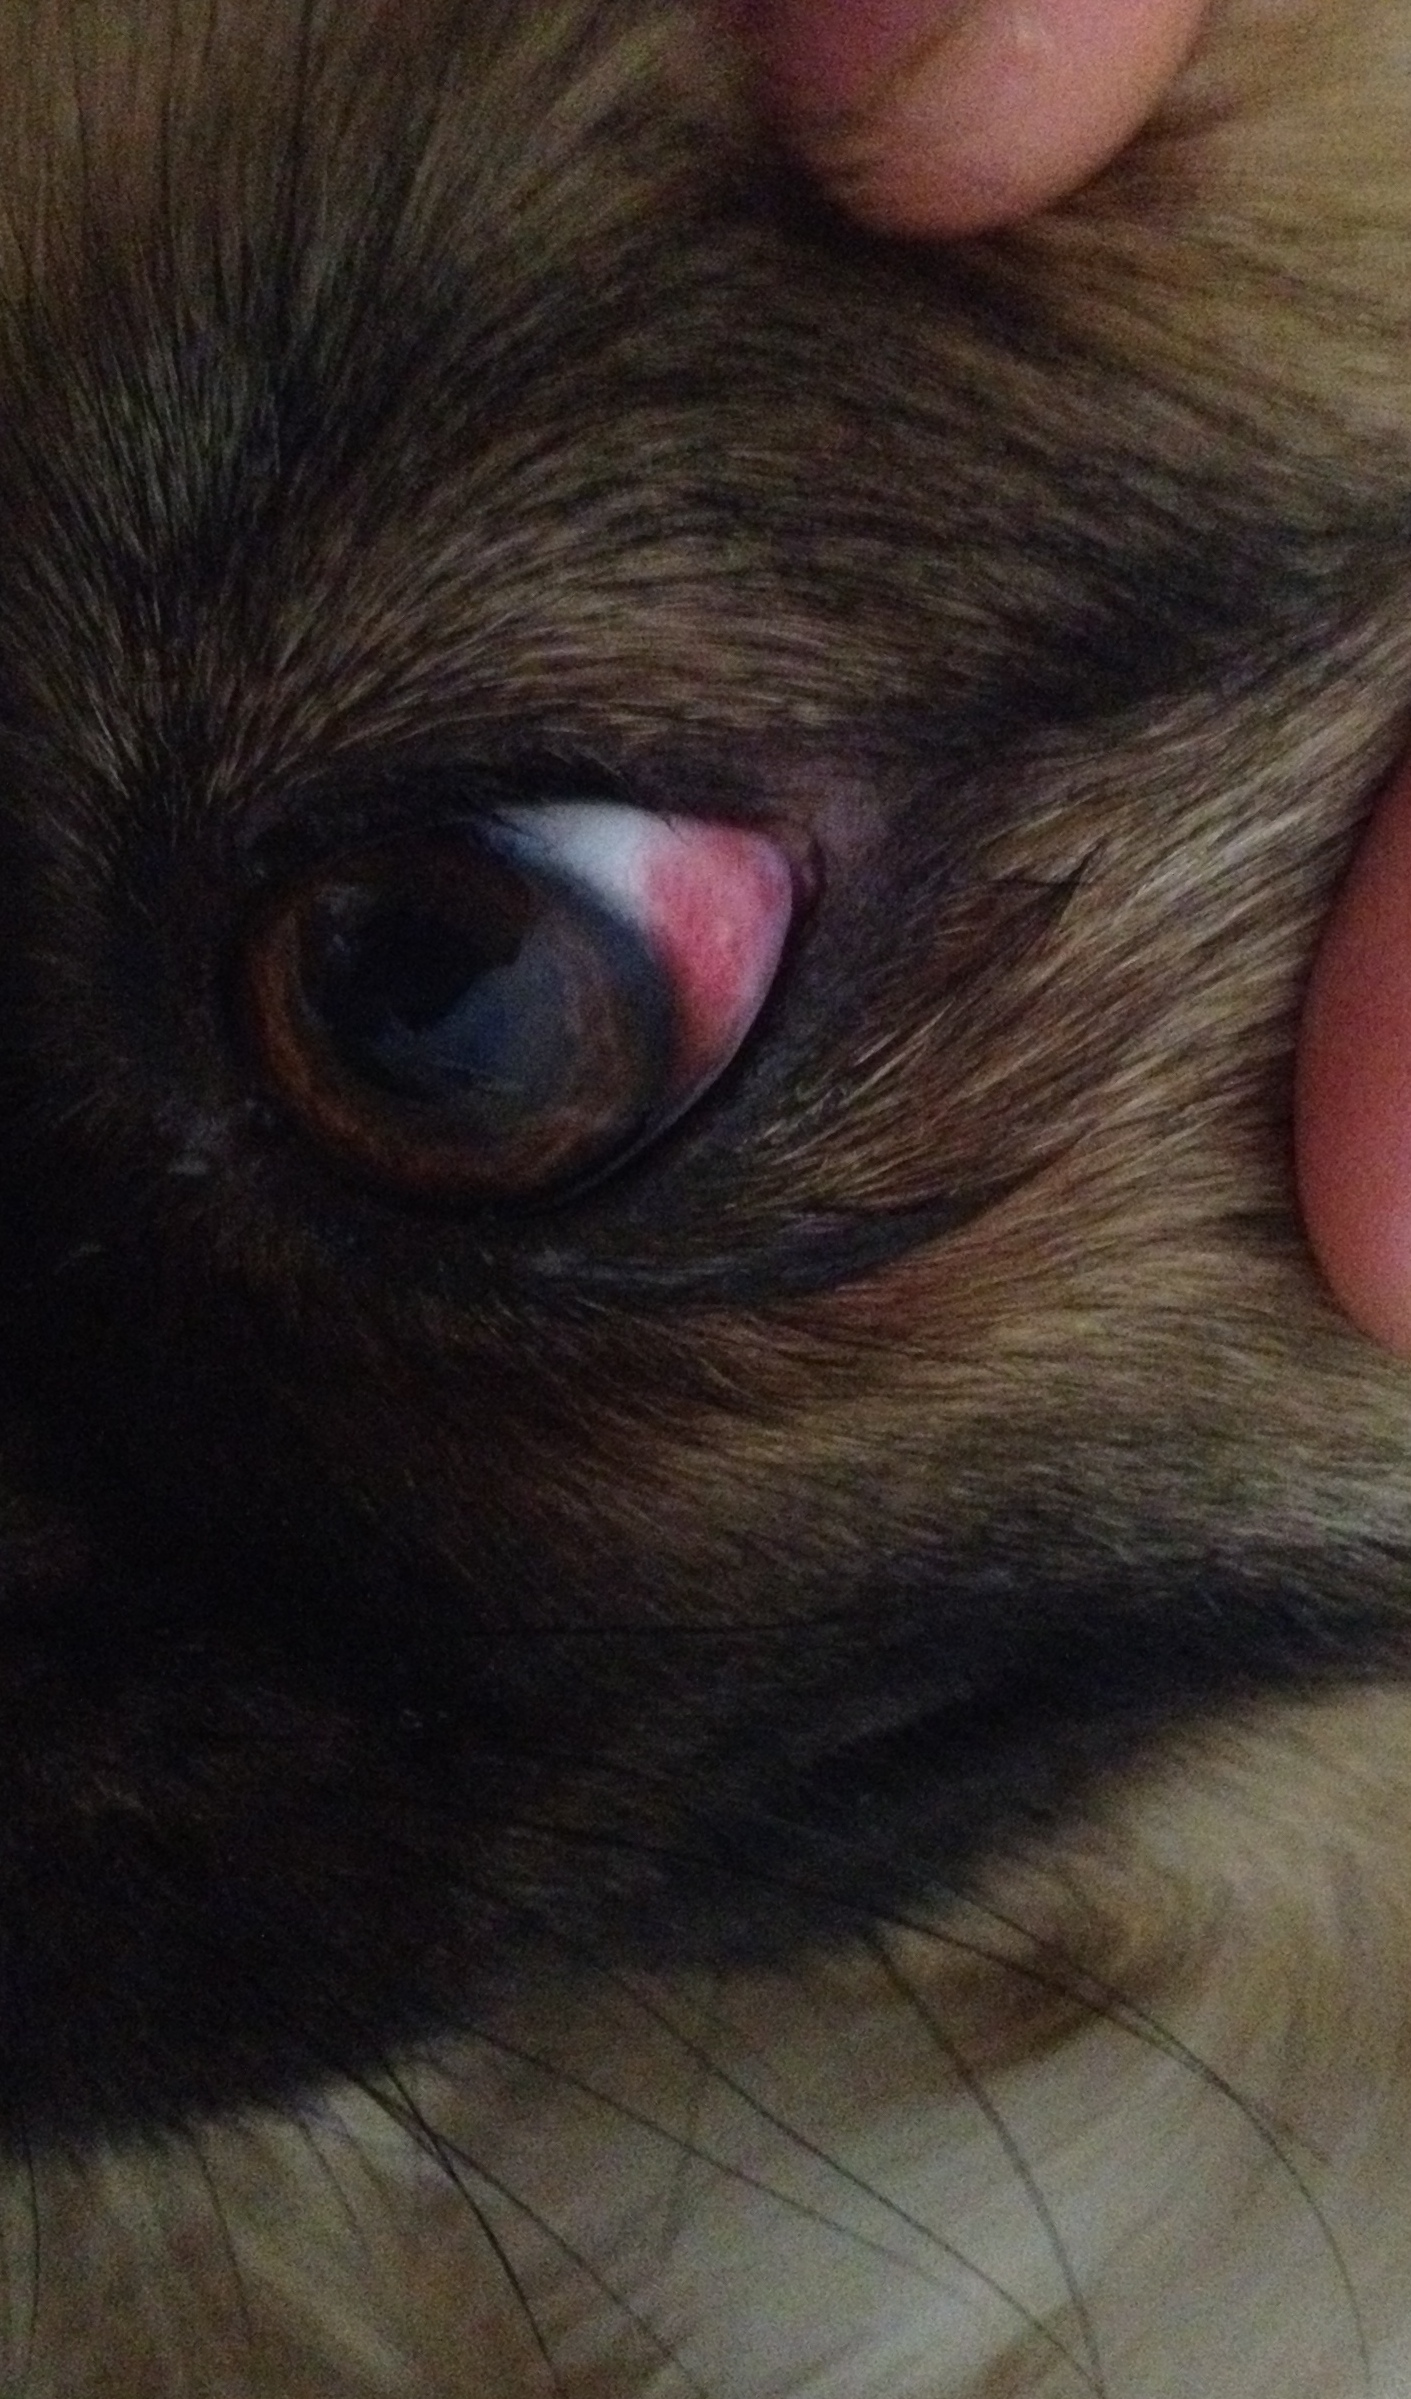 Hund Rotes Auge